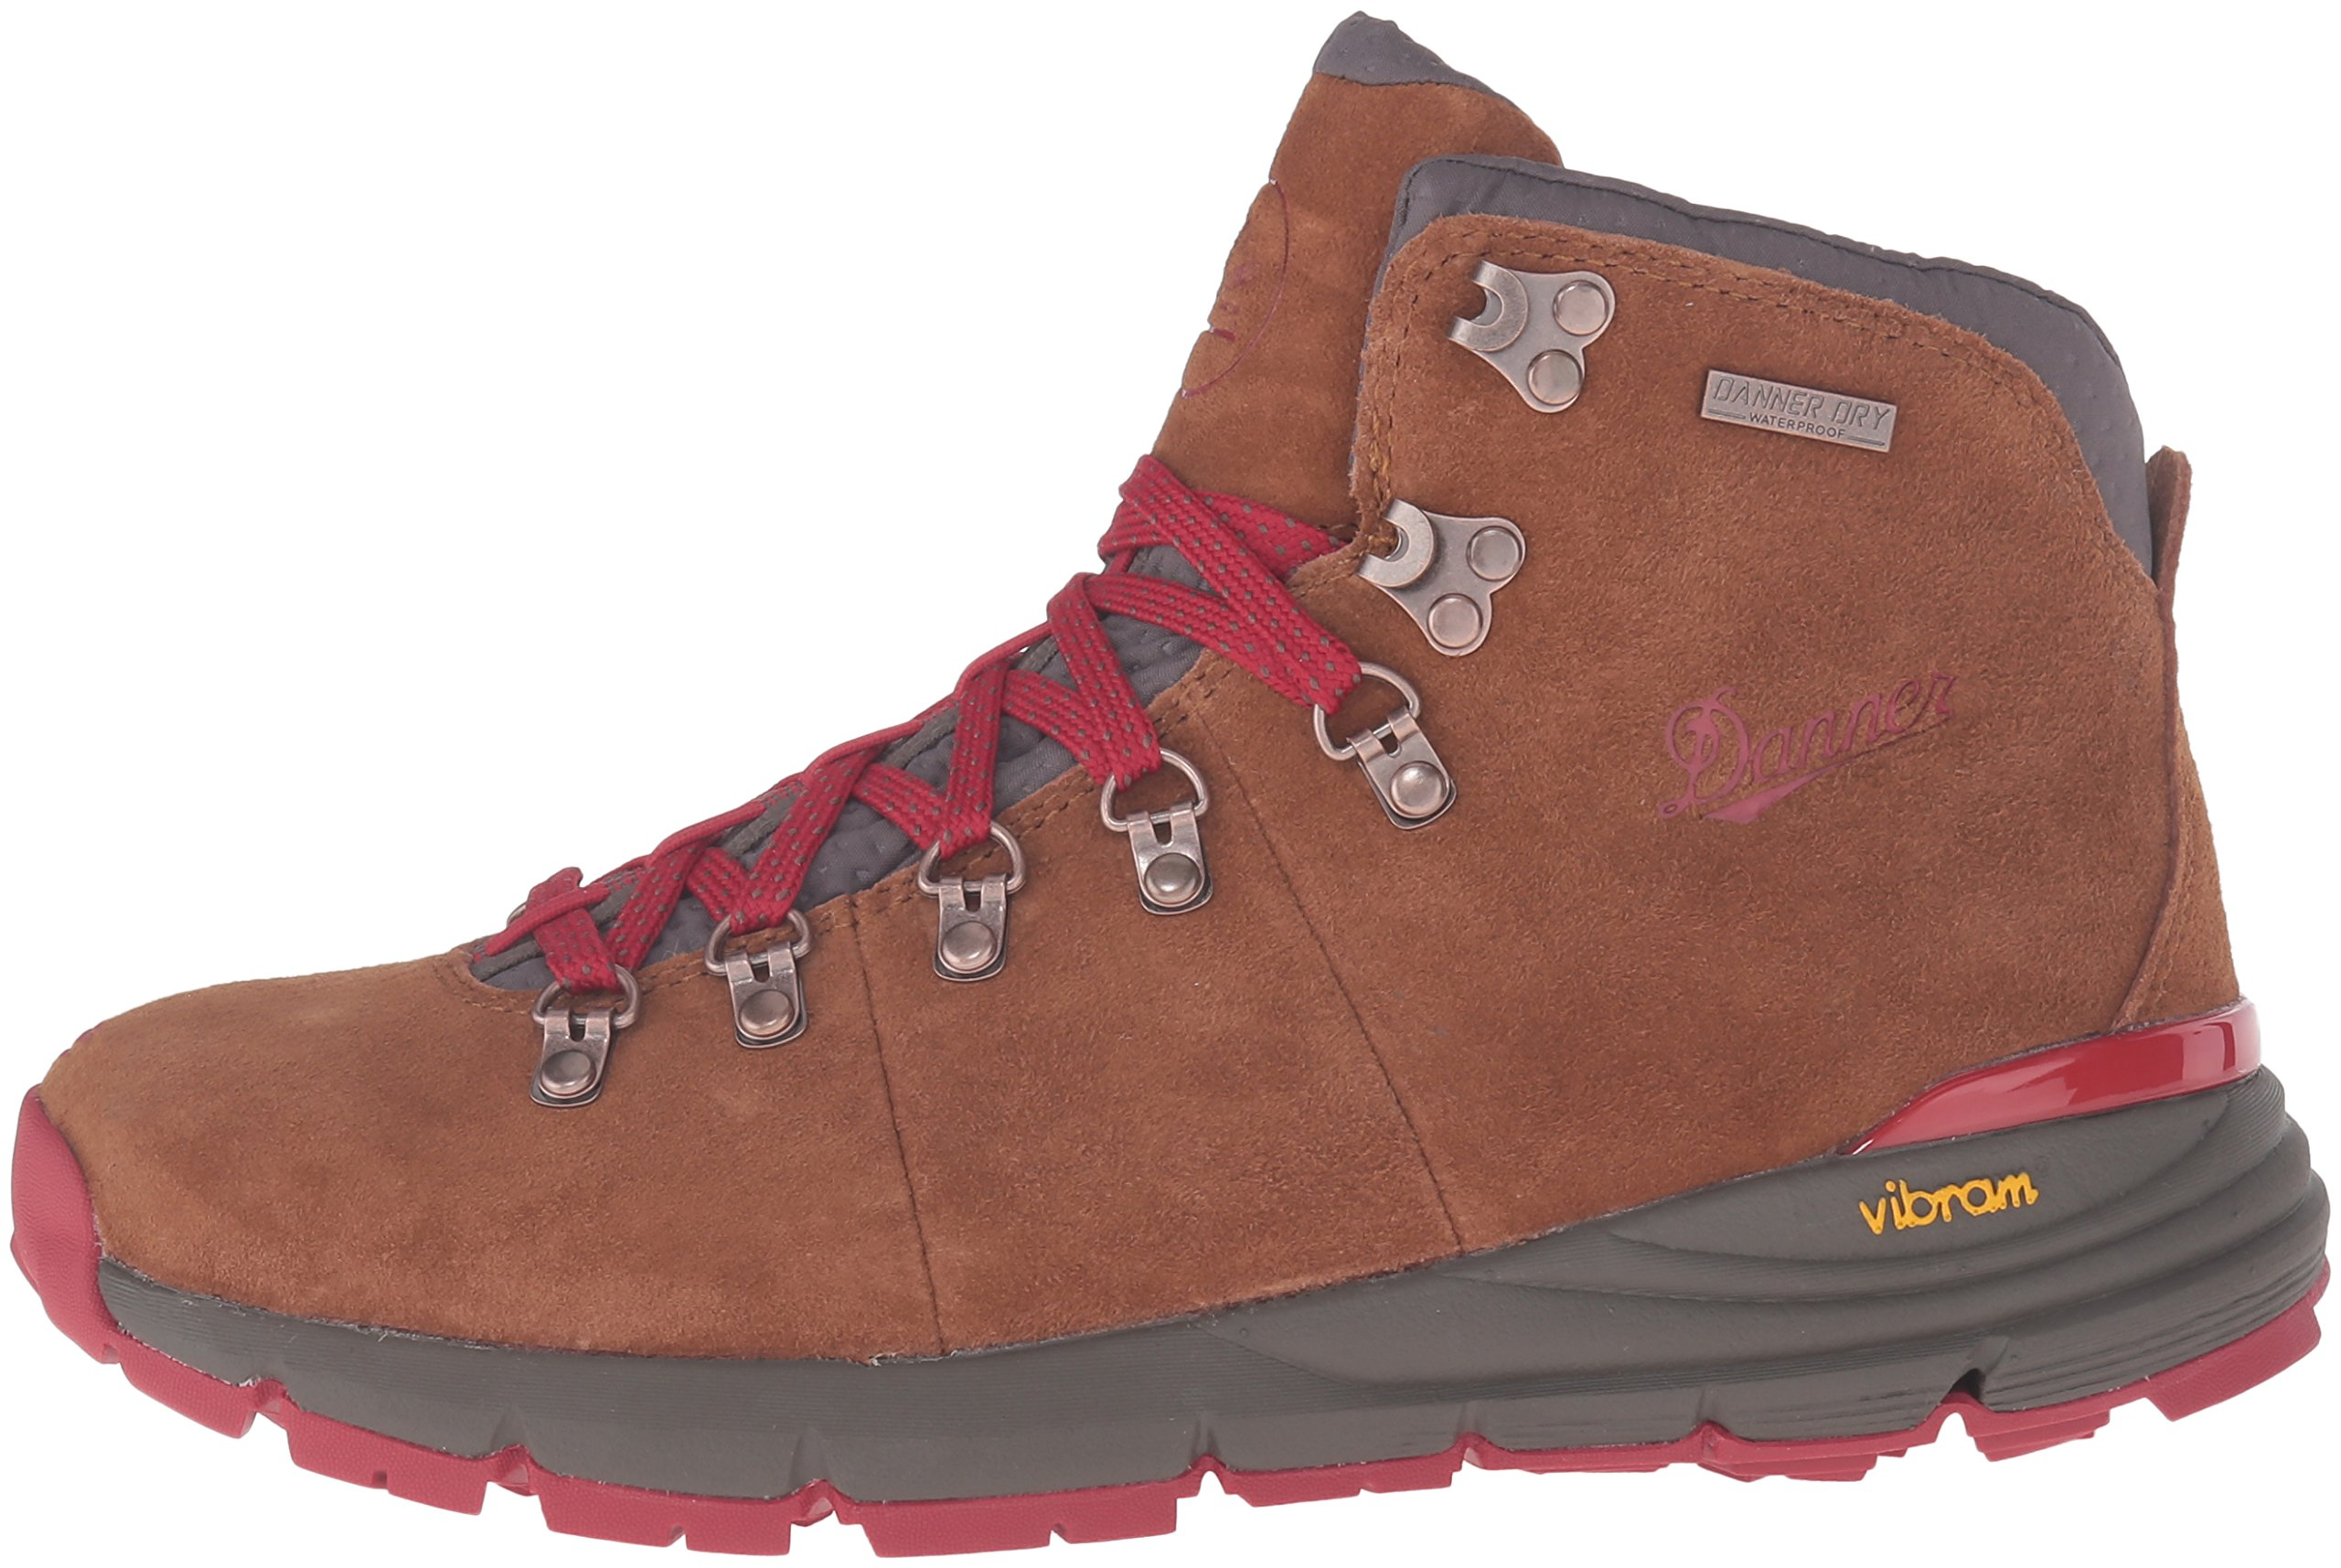 Danner Women's Mountain 600 4.5'' Hiking Boot, Brown/Red, 8.5 M US by Danner (Image #5)